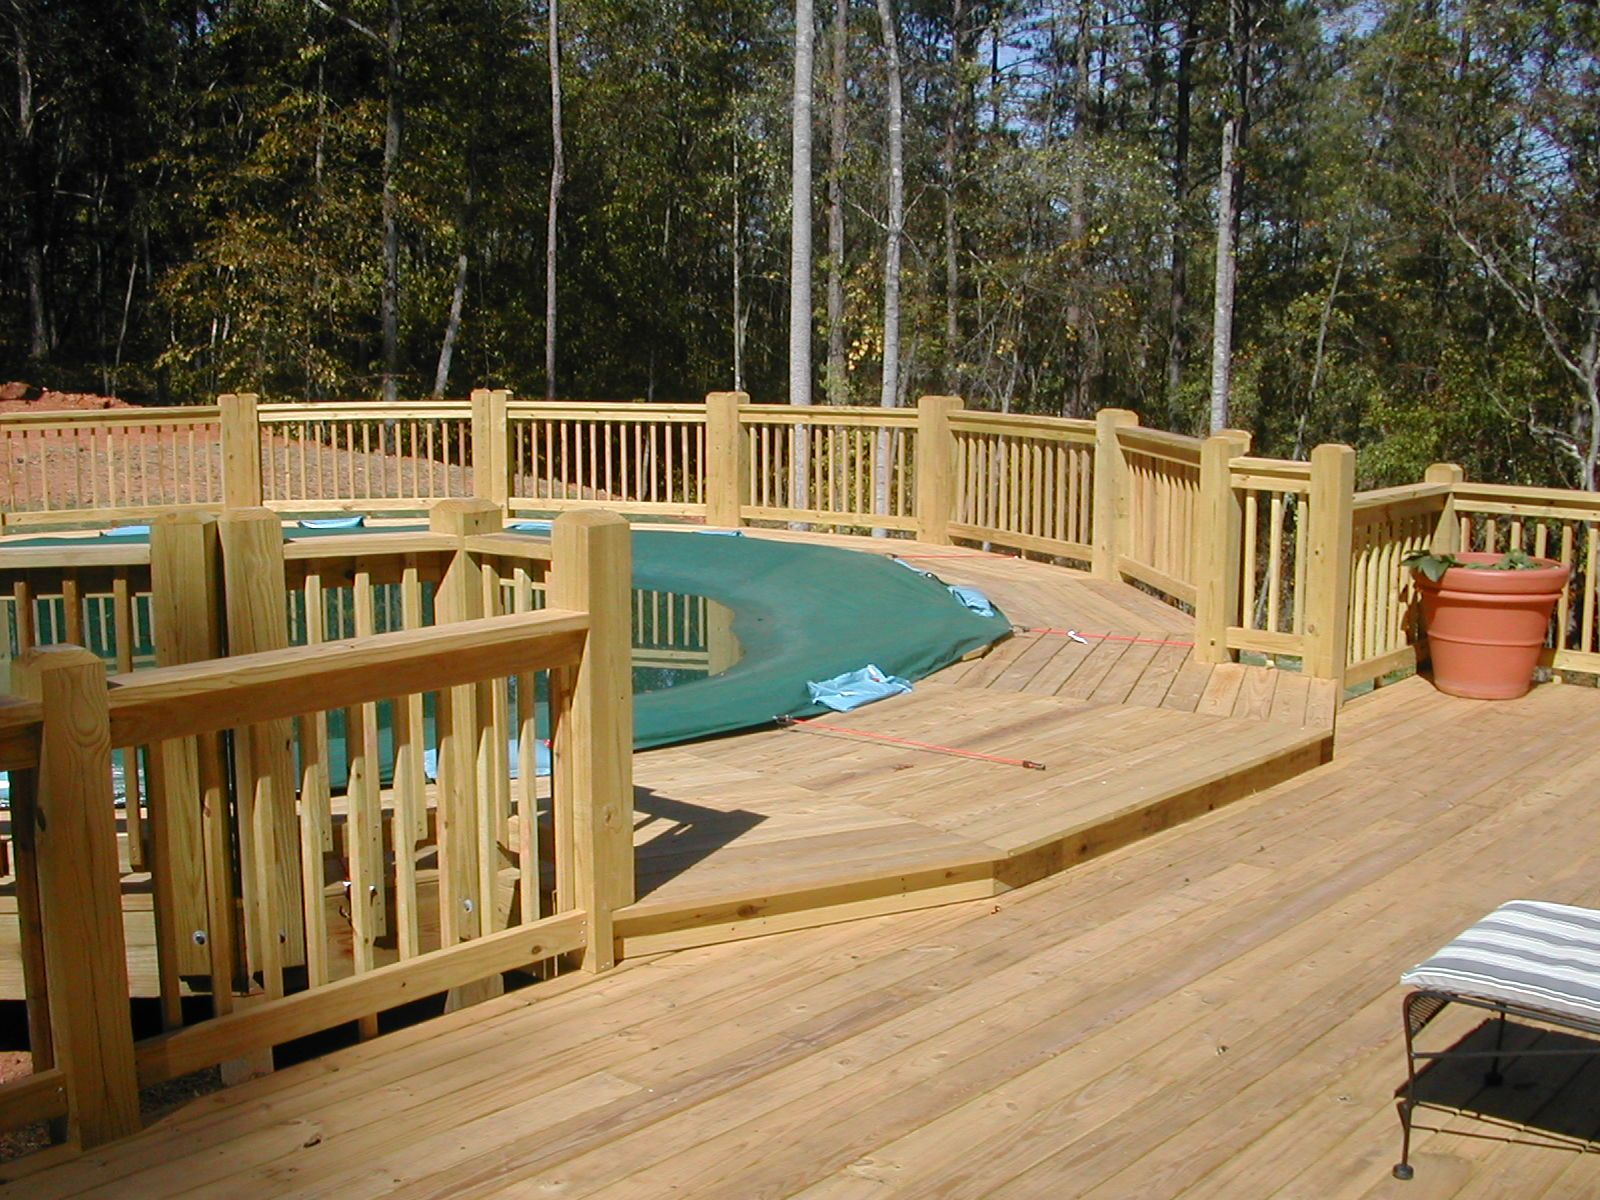 Above Ground Pool Decks Ideas above ground pool decks hgtv Find This Pin And More On Cool Ideas Charming Above Ground Pool Decks